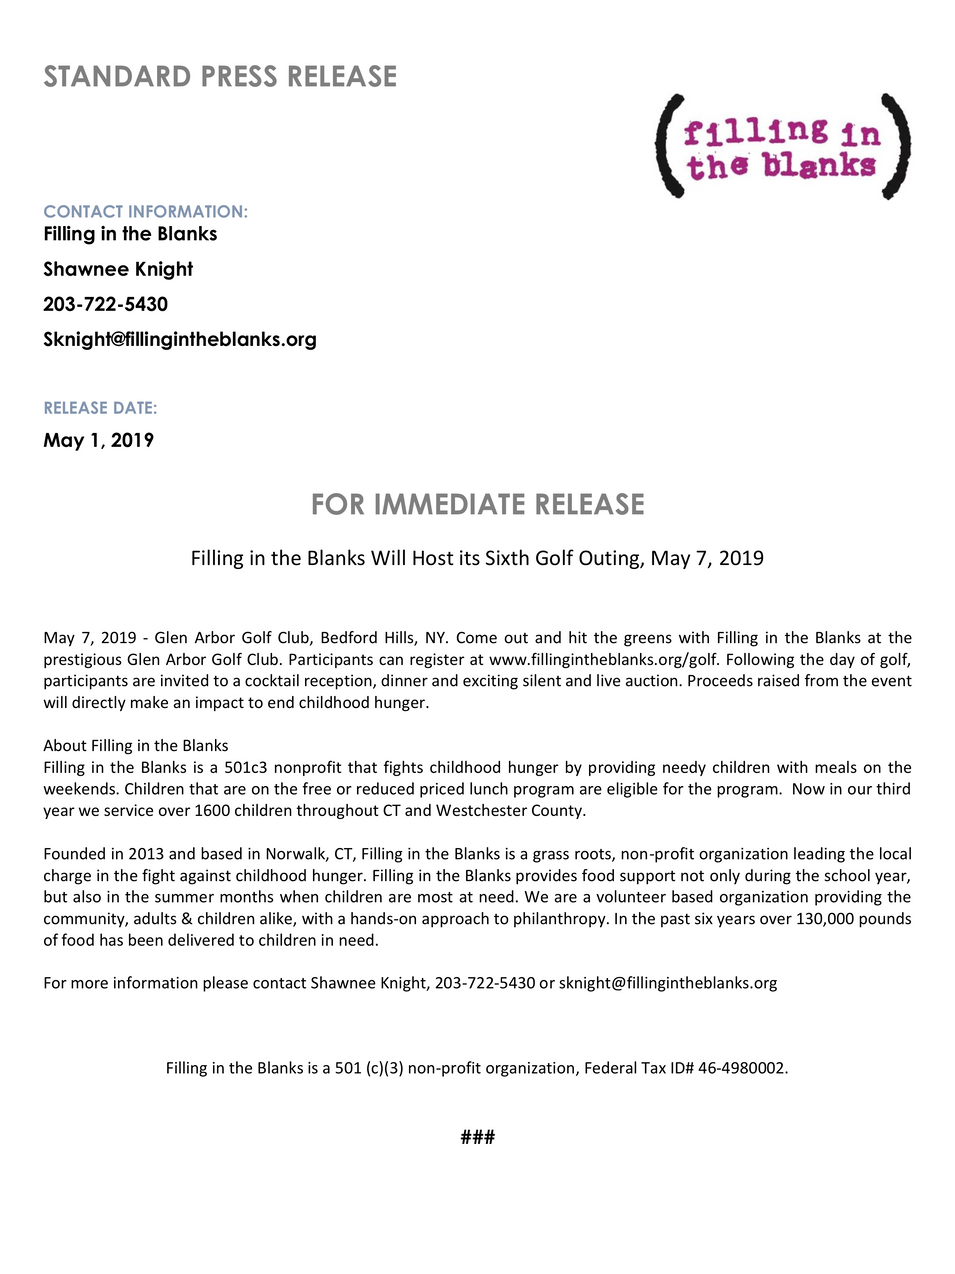 Golf Outing Release 2019